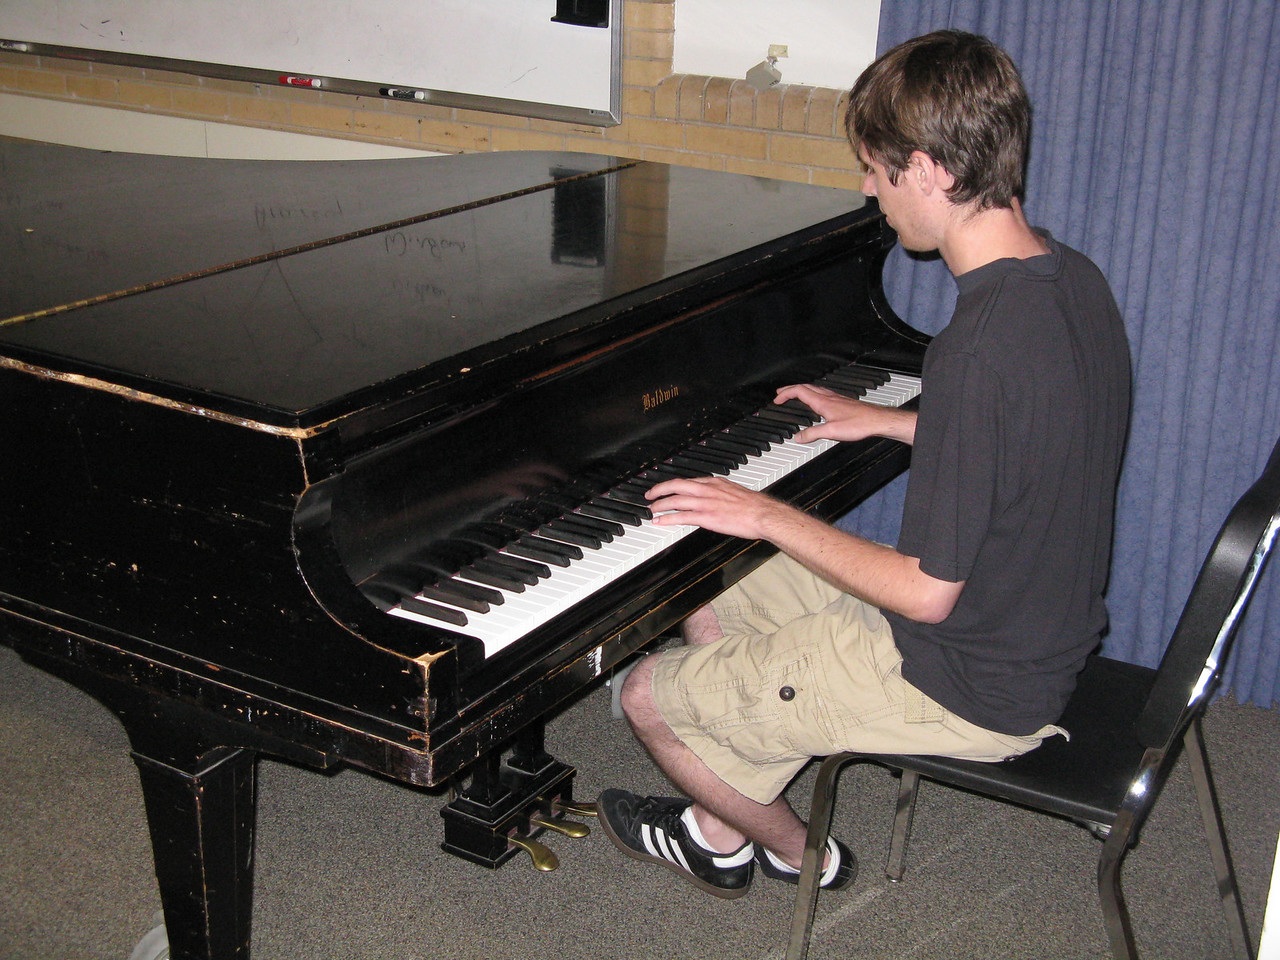 Kevin has a jazz piano audition shortly before classes start on August 23rd.